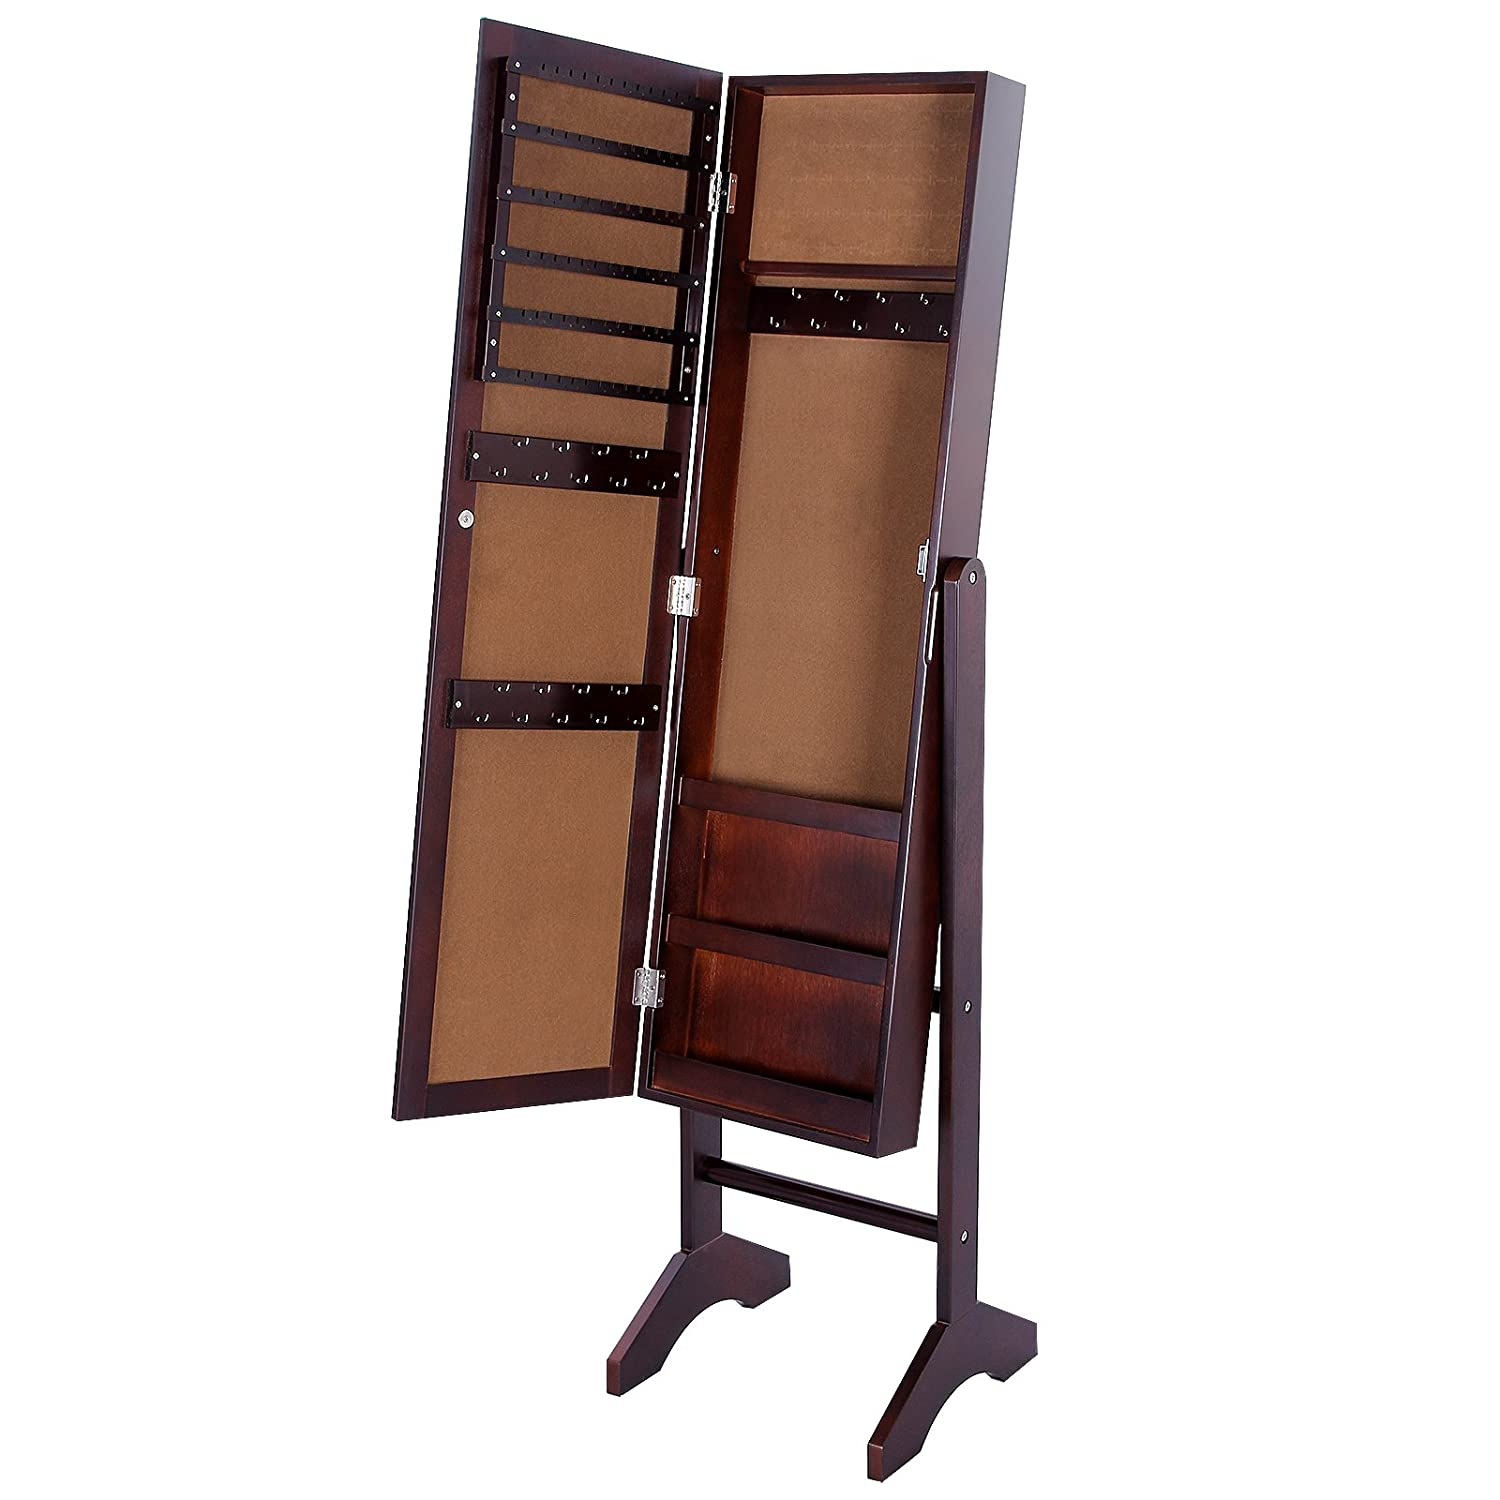 Amazoncom SONGMICS Mirrored Jewelry Cabinet with Stand Armoire